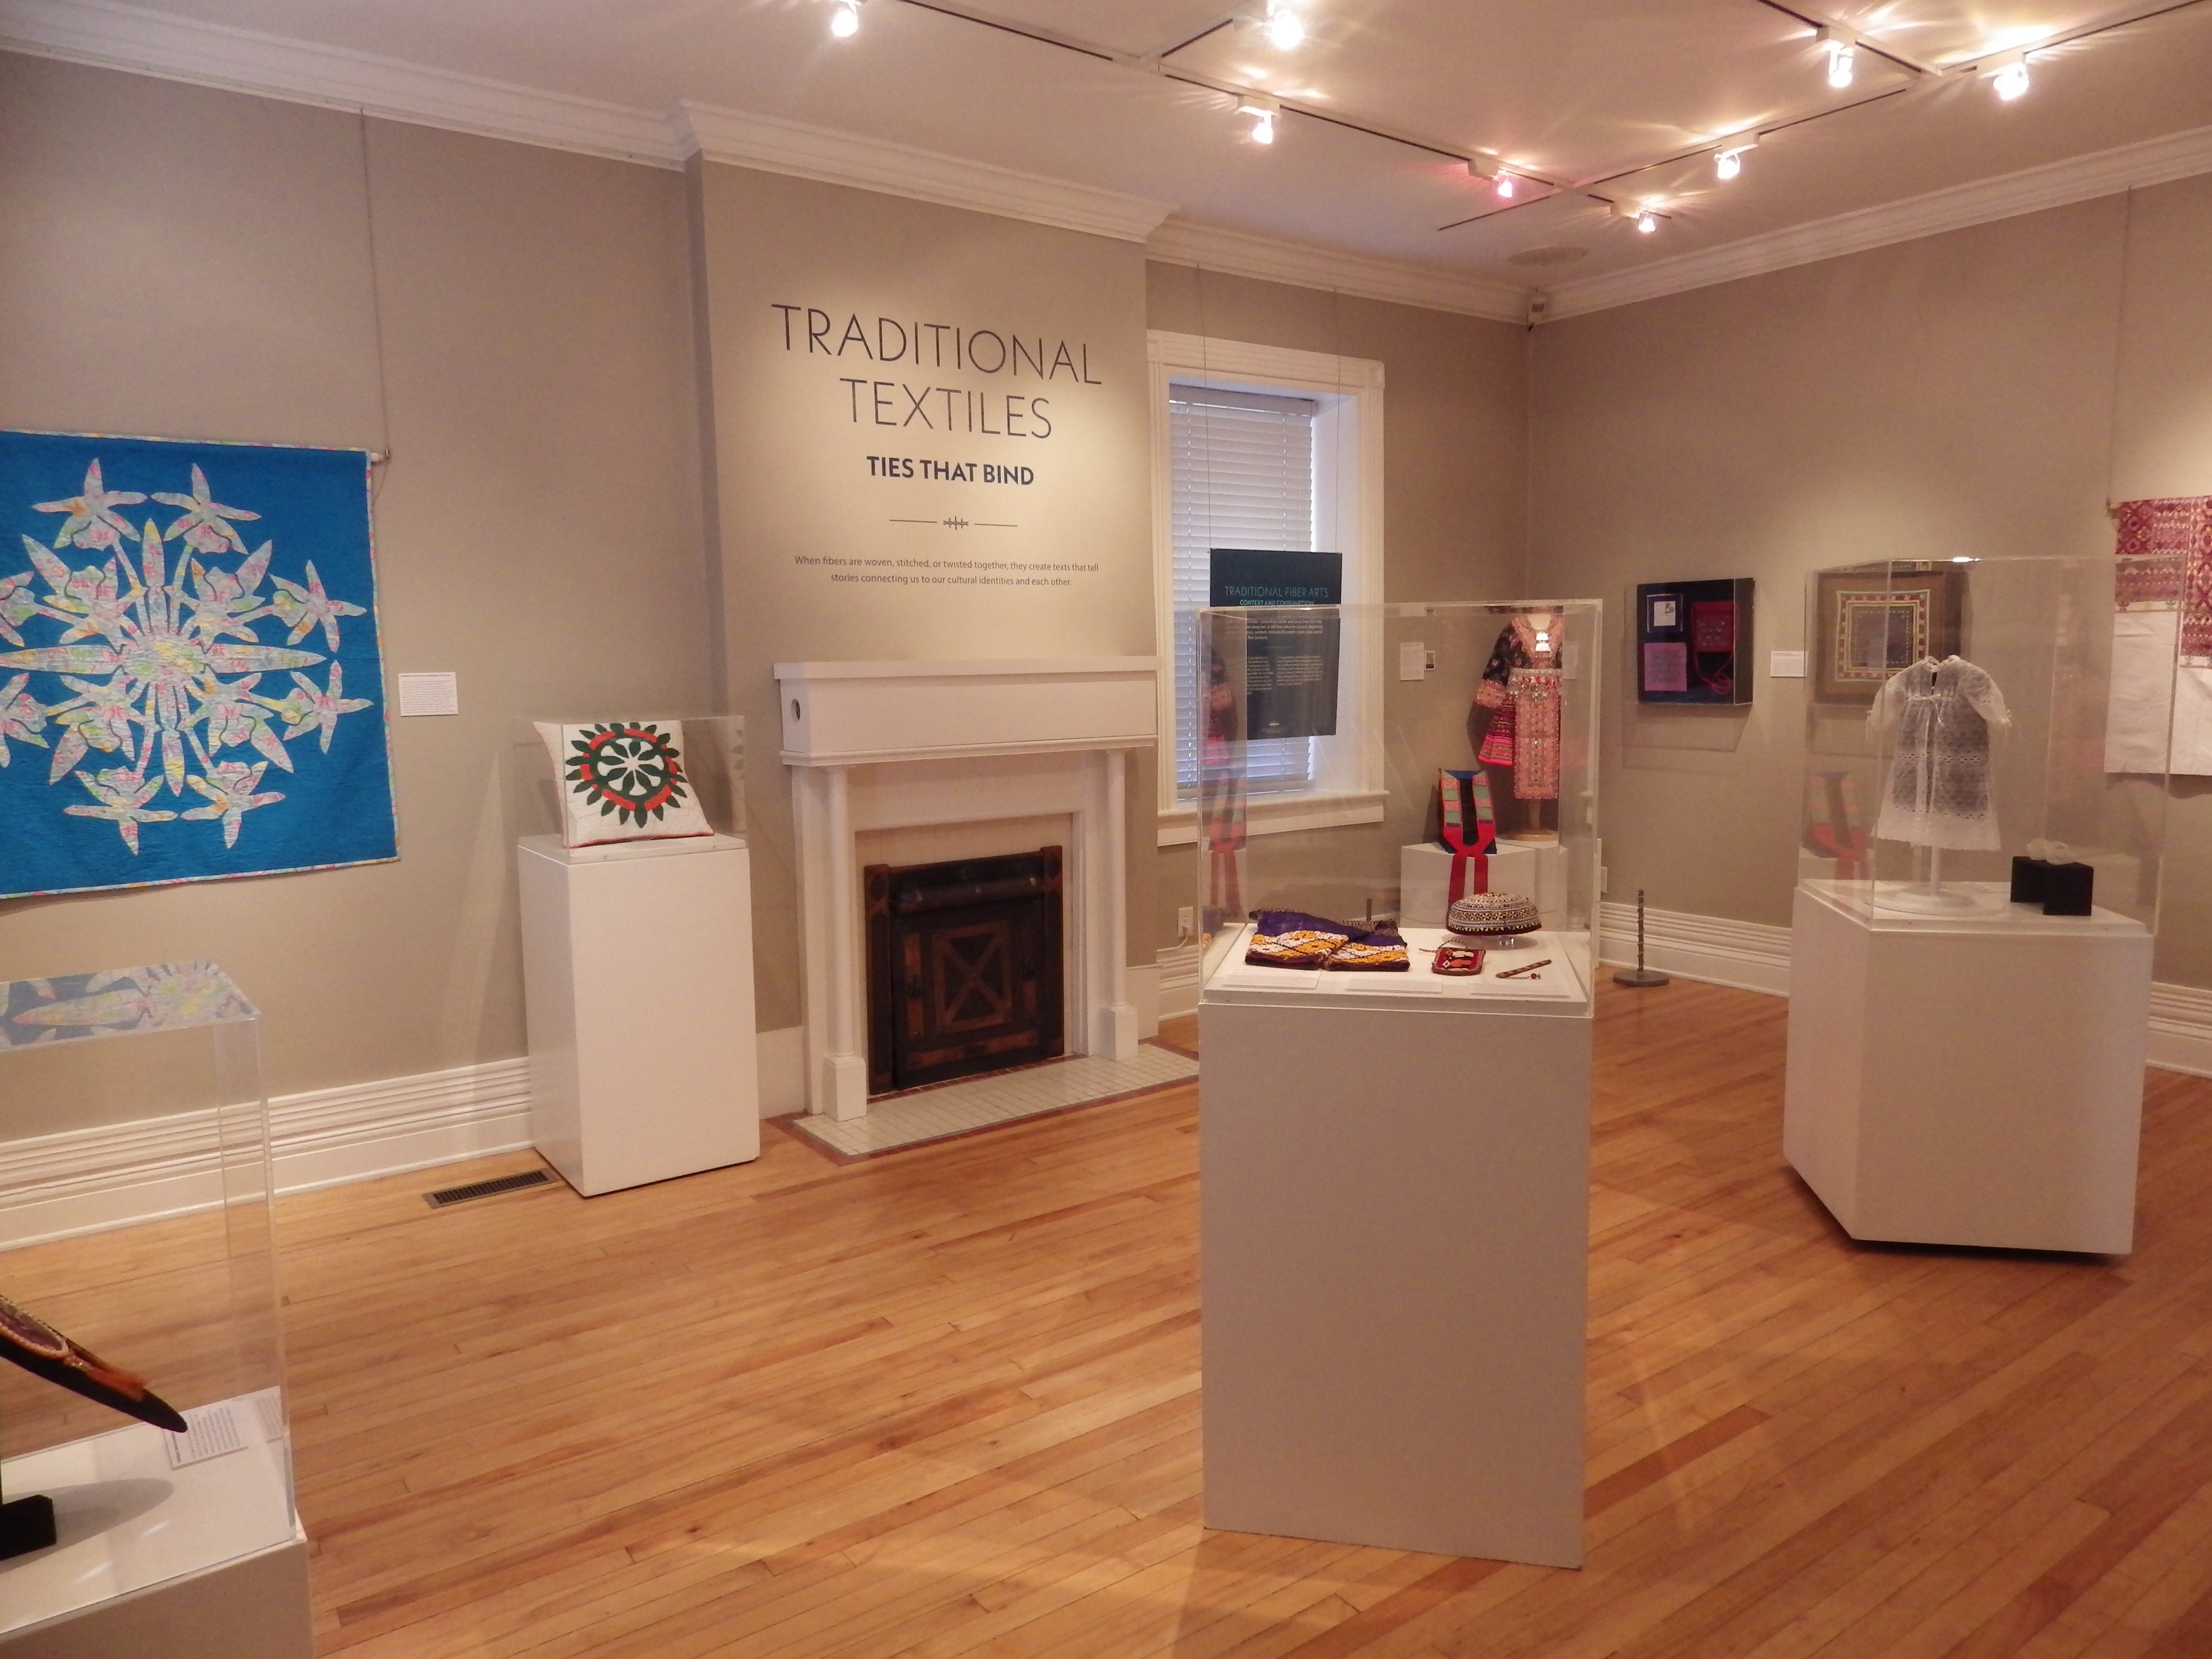 """An image of an art gallery with the words """"Traditional Textiles: Ties that Bind"""" on the wall."""